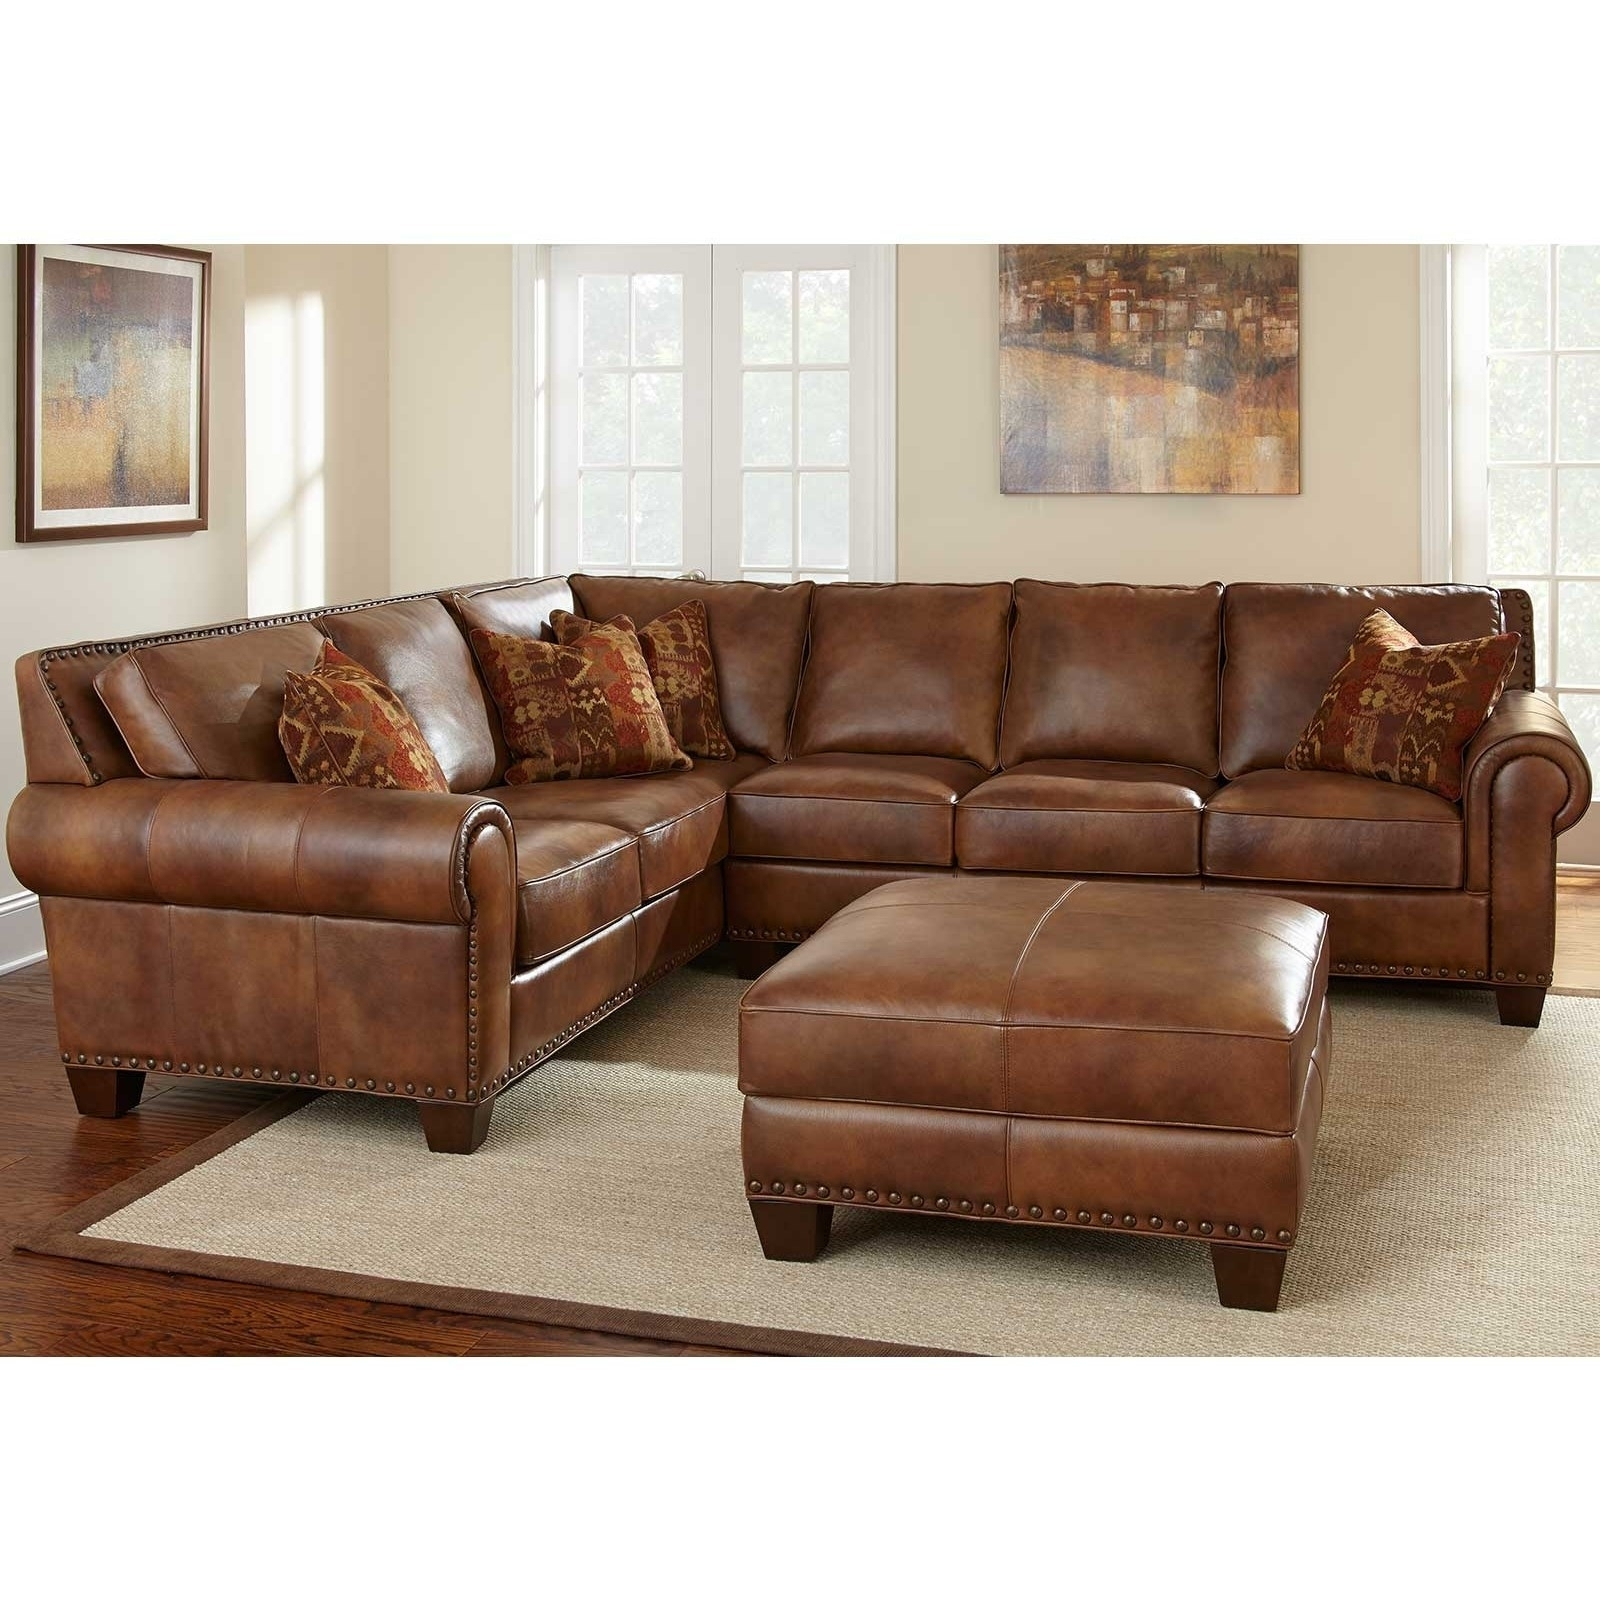 Jcpenney Sectional Sofas Throughout Recent Microfiber Sectional Sofas For Sale – Hotelsbacau (Gallery 12 of 15)